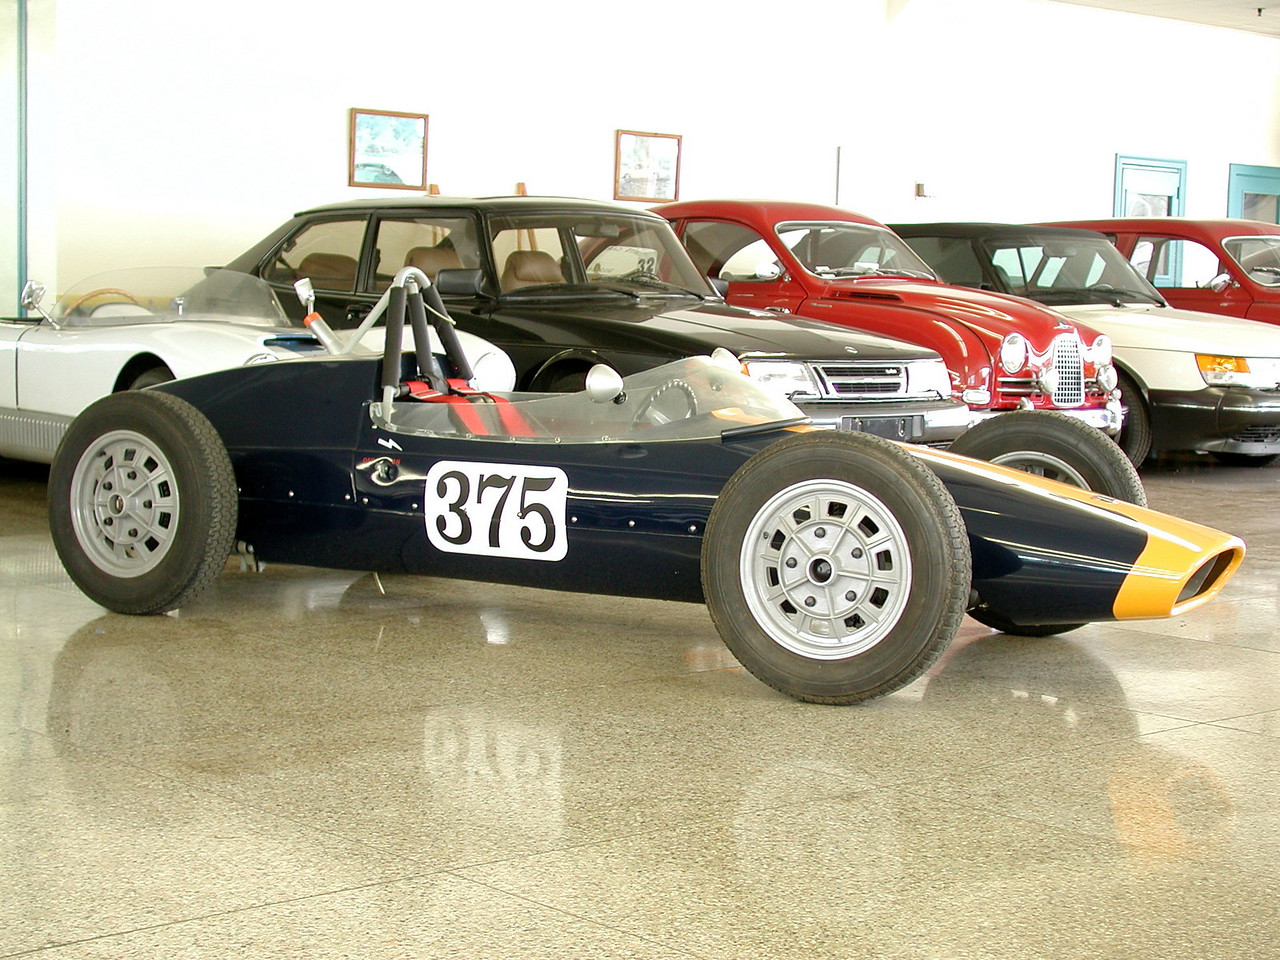 This collection, located in the main showroom, includes many vintage and extremely rare Saab models